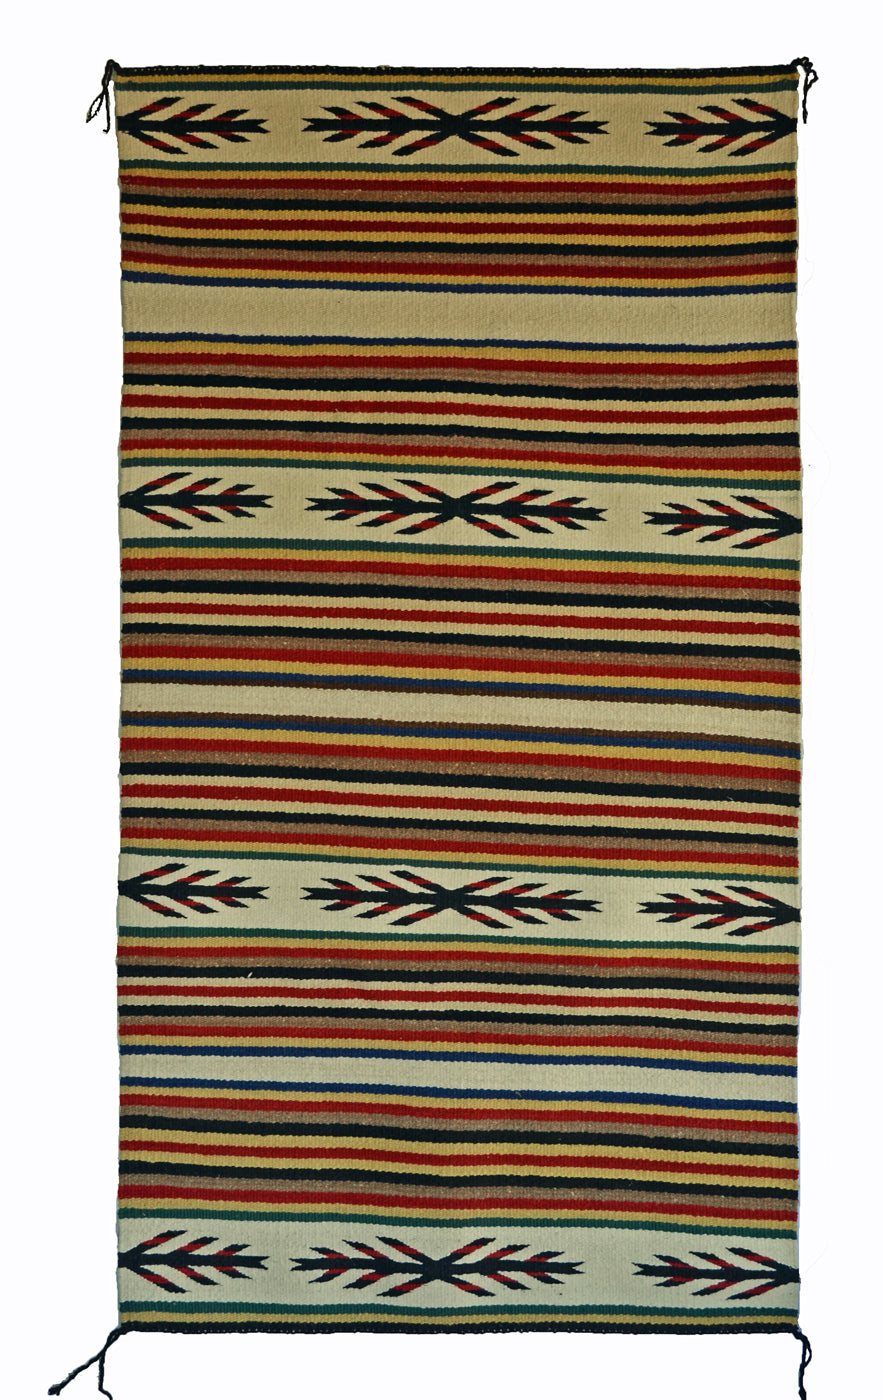 "Navajo Saddle Blanket - Double : Nizhoni Ranch Gallery : SG 37 : 31"" x 59"" - Getzwiller's Nizhoni Ranch Gallery"